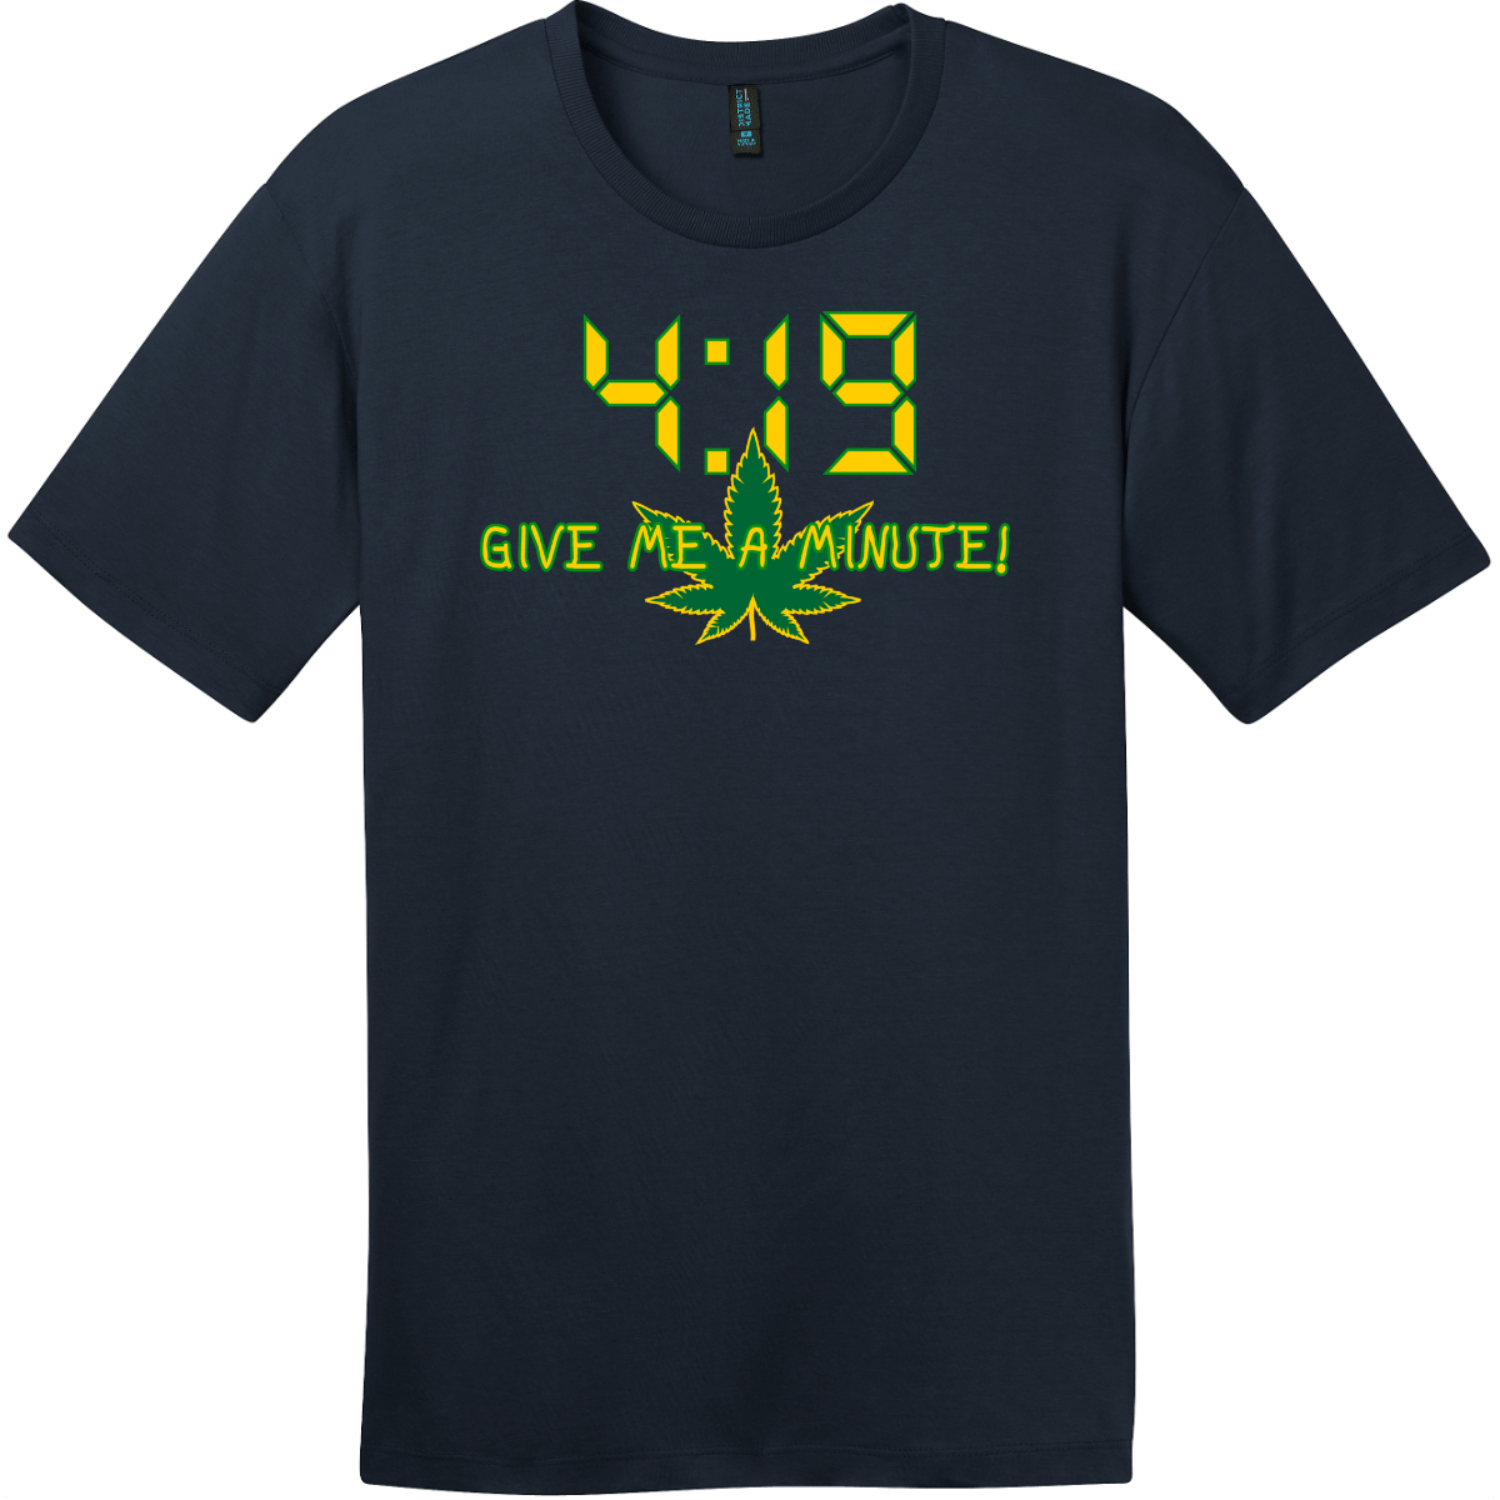 4:19 Give Me A Minute T-Shirt New Navy District Perfect Weight Tee DT104